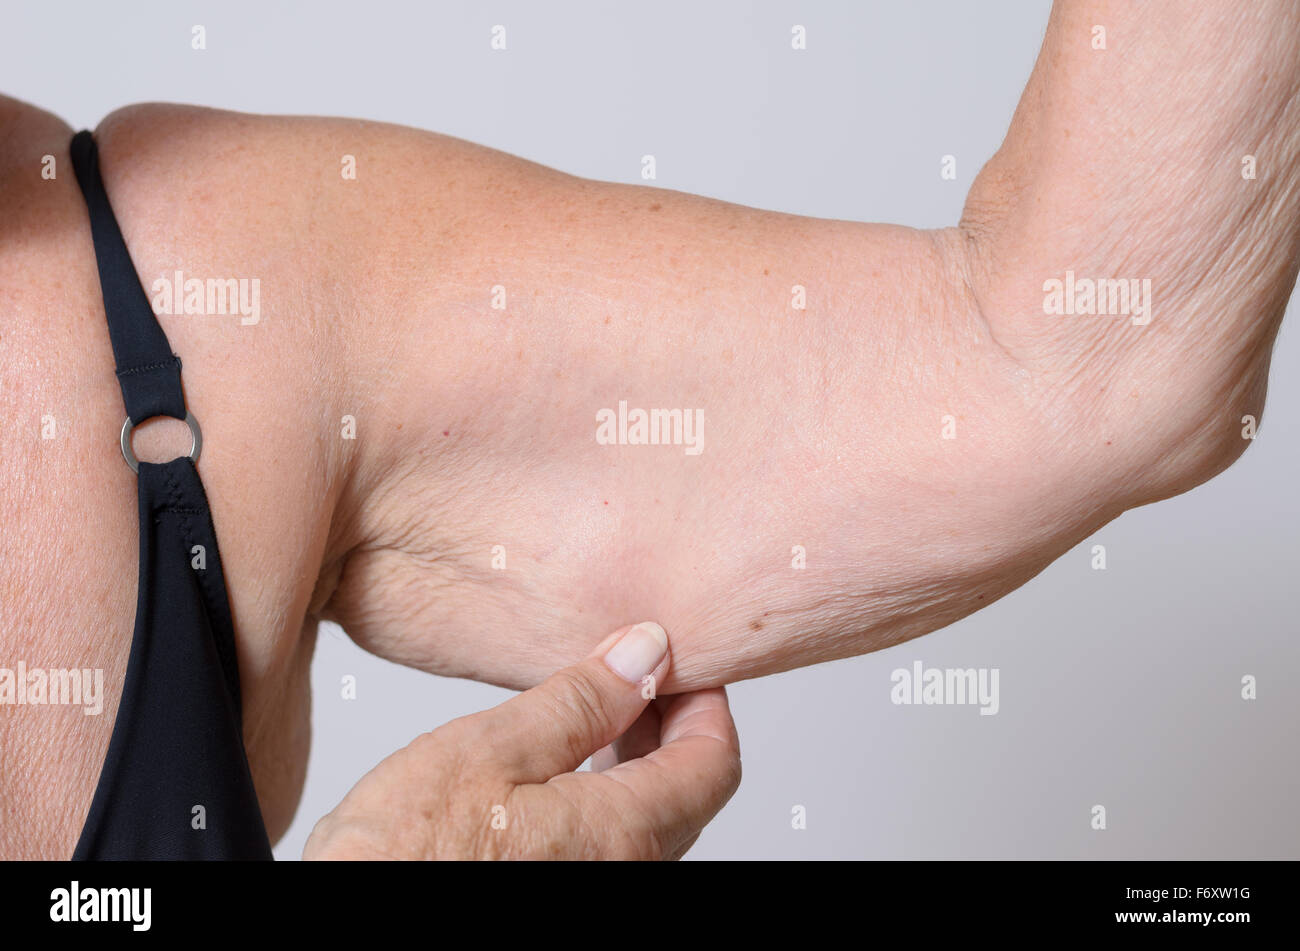 Elderly lady displaying the loose skin or flab due to ageing on her upper arm pinching it between her fingers, close - Stock Image